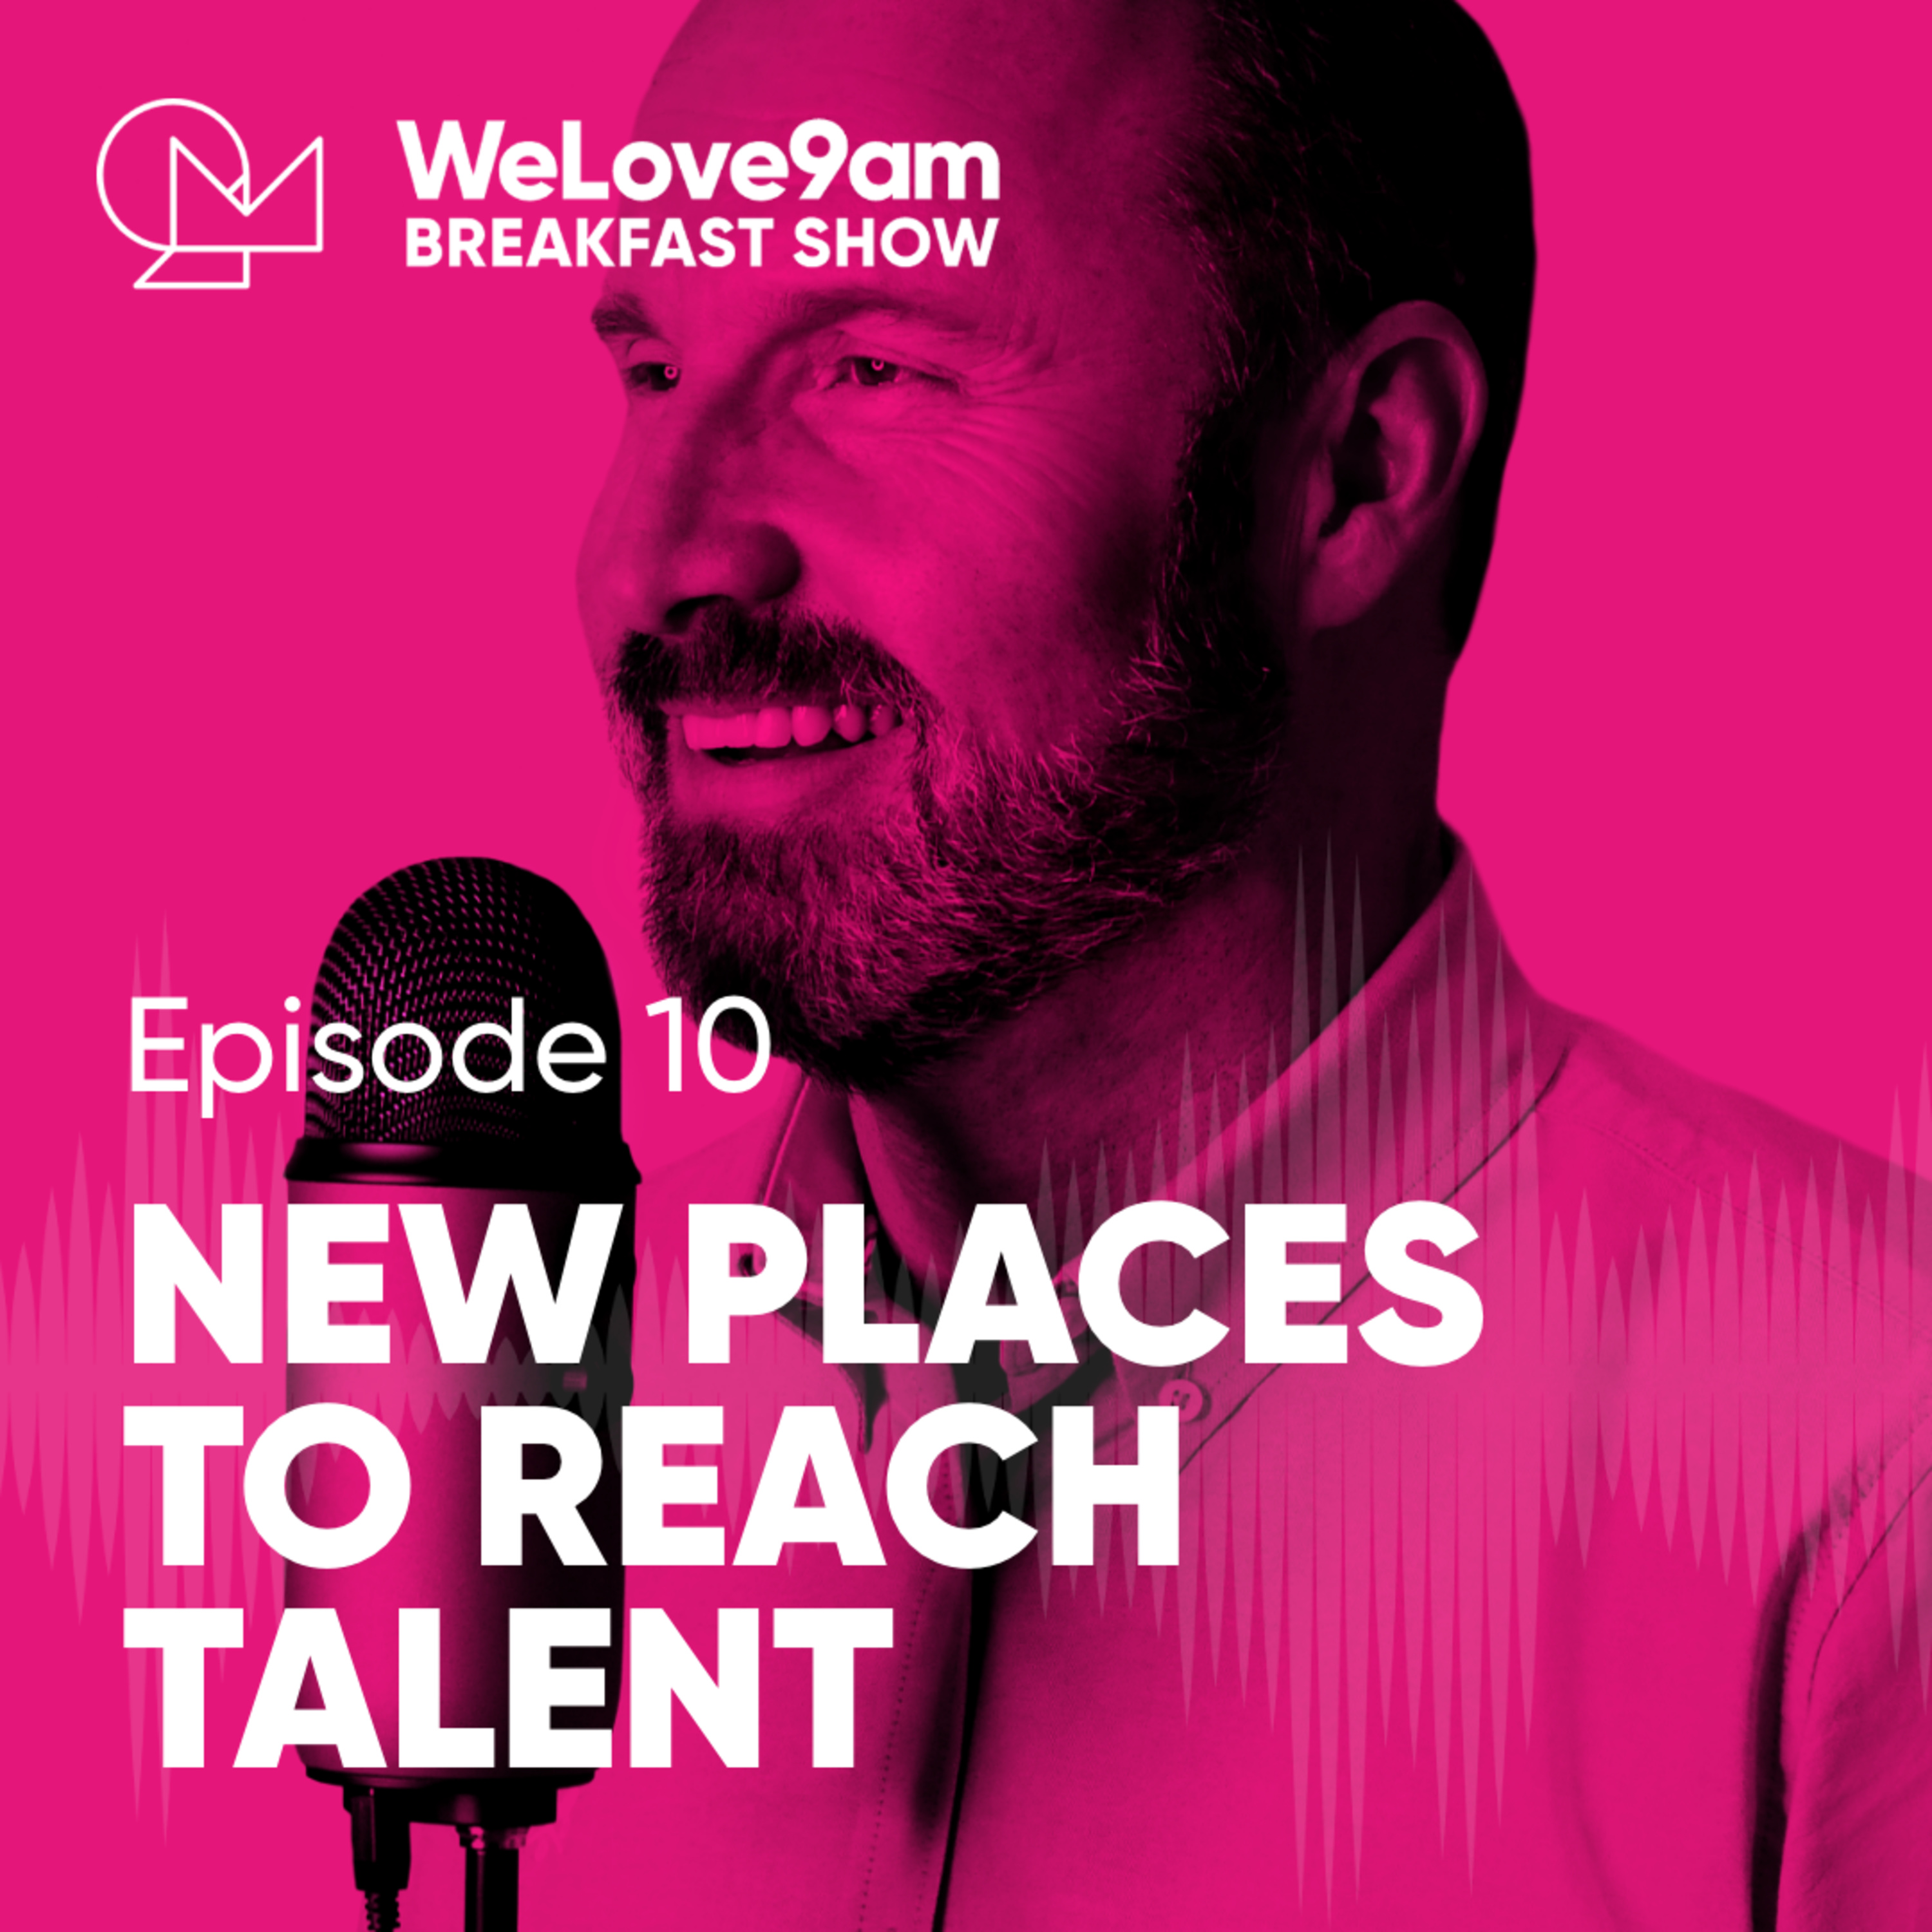 E10. New places to reach talent